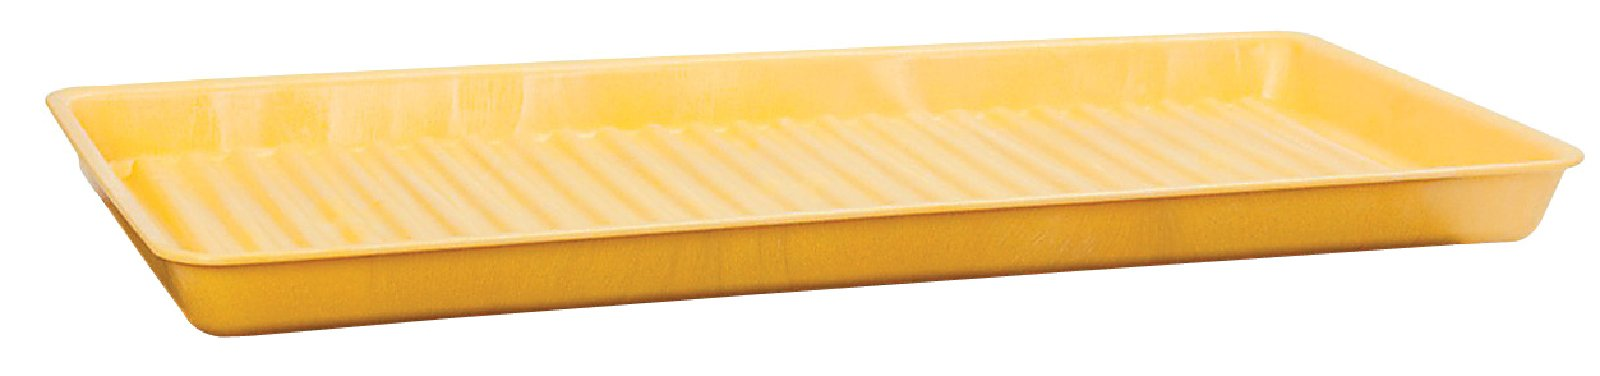 Eagle 1677 HDPE Containment Utility Tray, 36'' Length x 18'' Width x 2'' Height by Eagle